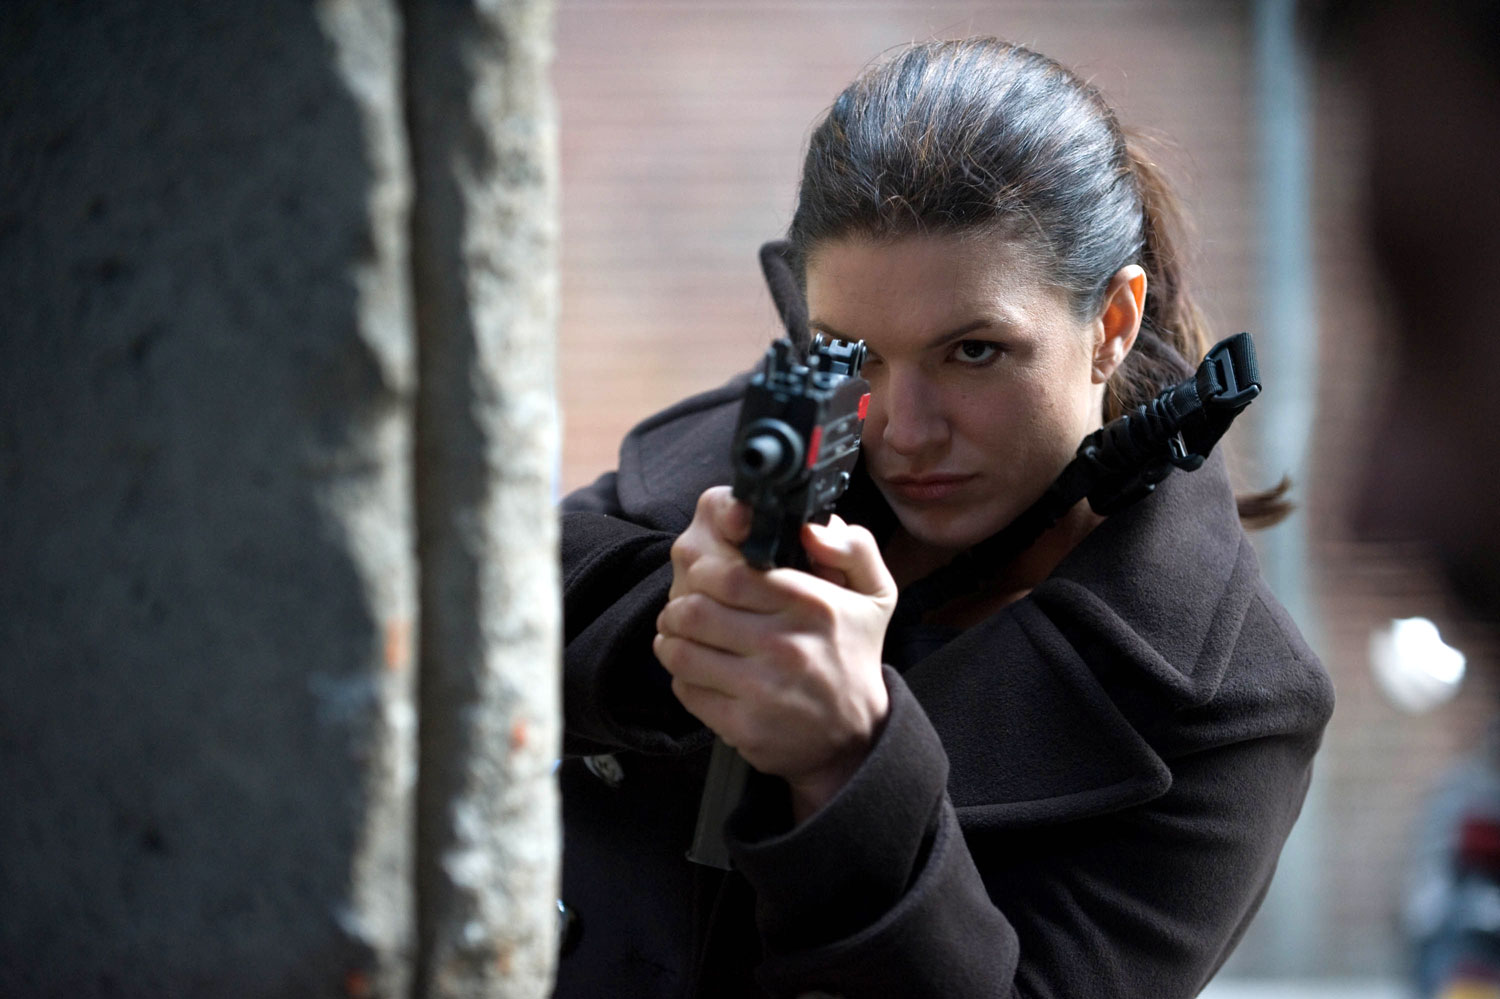 Gina Carano is no stranger to the aggressive world of athletics – her father was a backup quarterback for the Dallas Cowboys. From MMA to Hollywood, Gina made her big screen debut in 2011's Haywire. She starred in Fast & Furious 6 and has several other projects lined up. Her acting abilities aren't going unrecognized […]